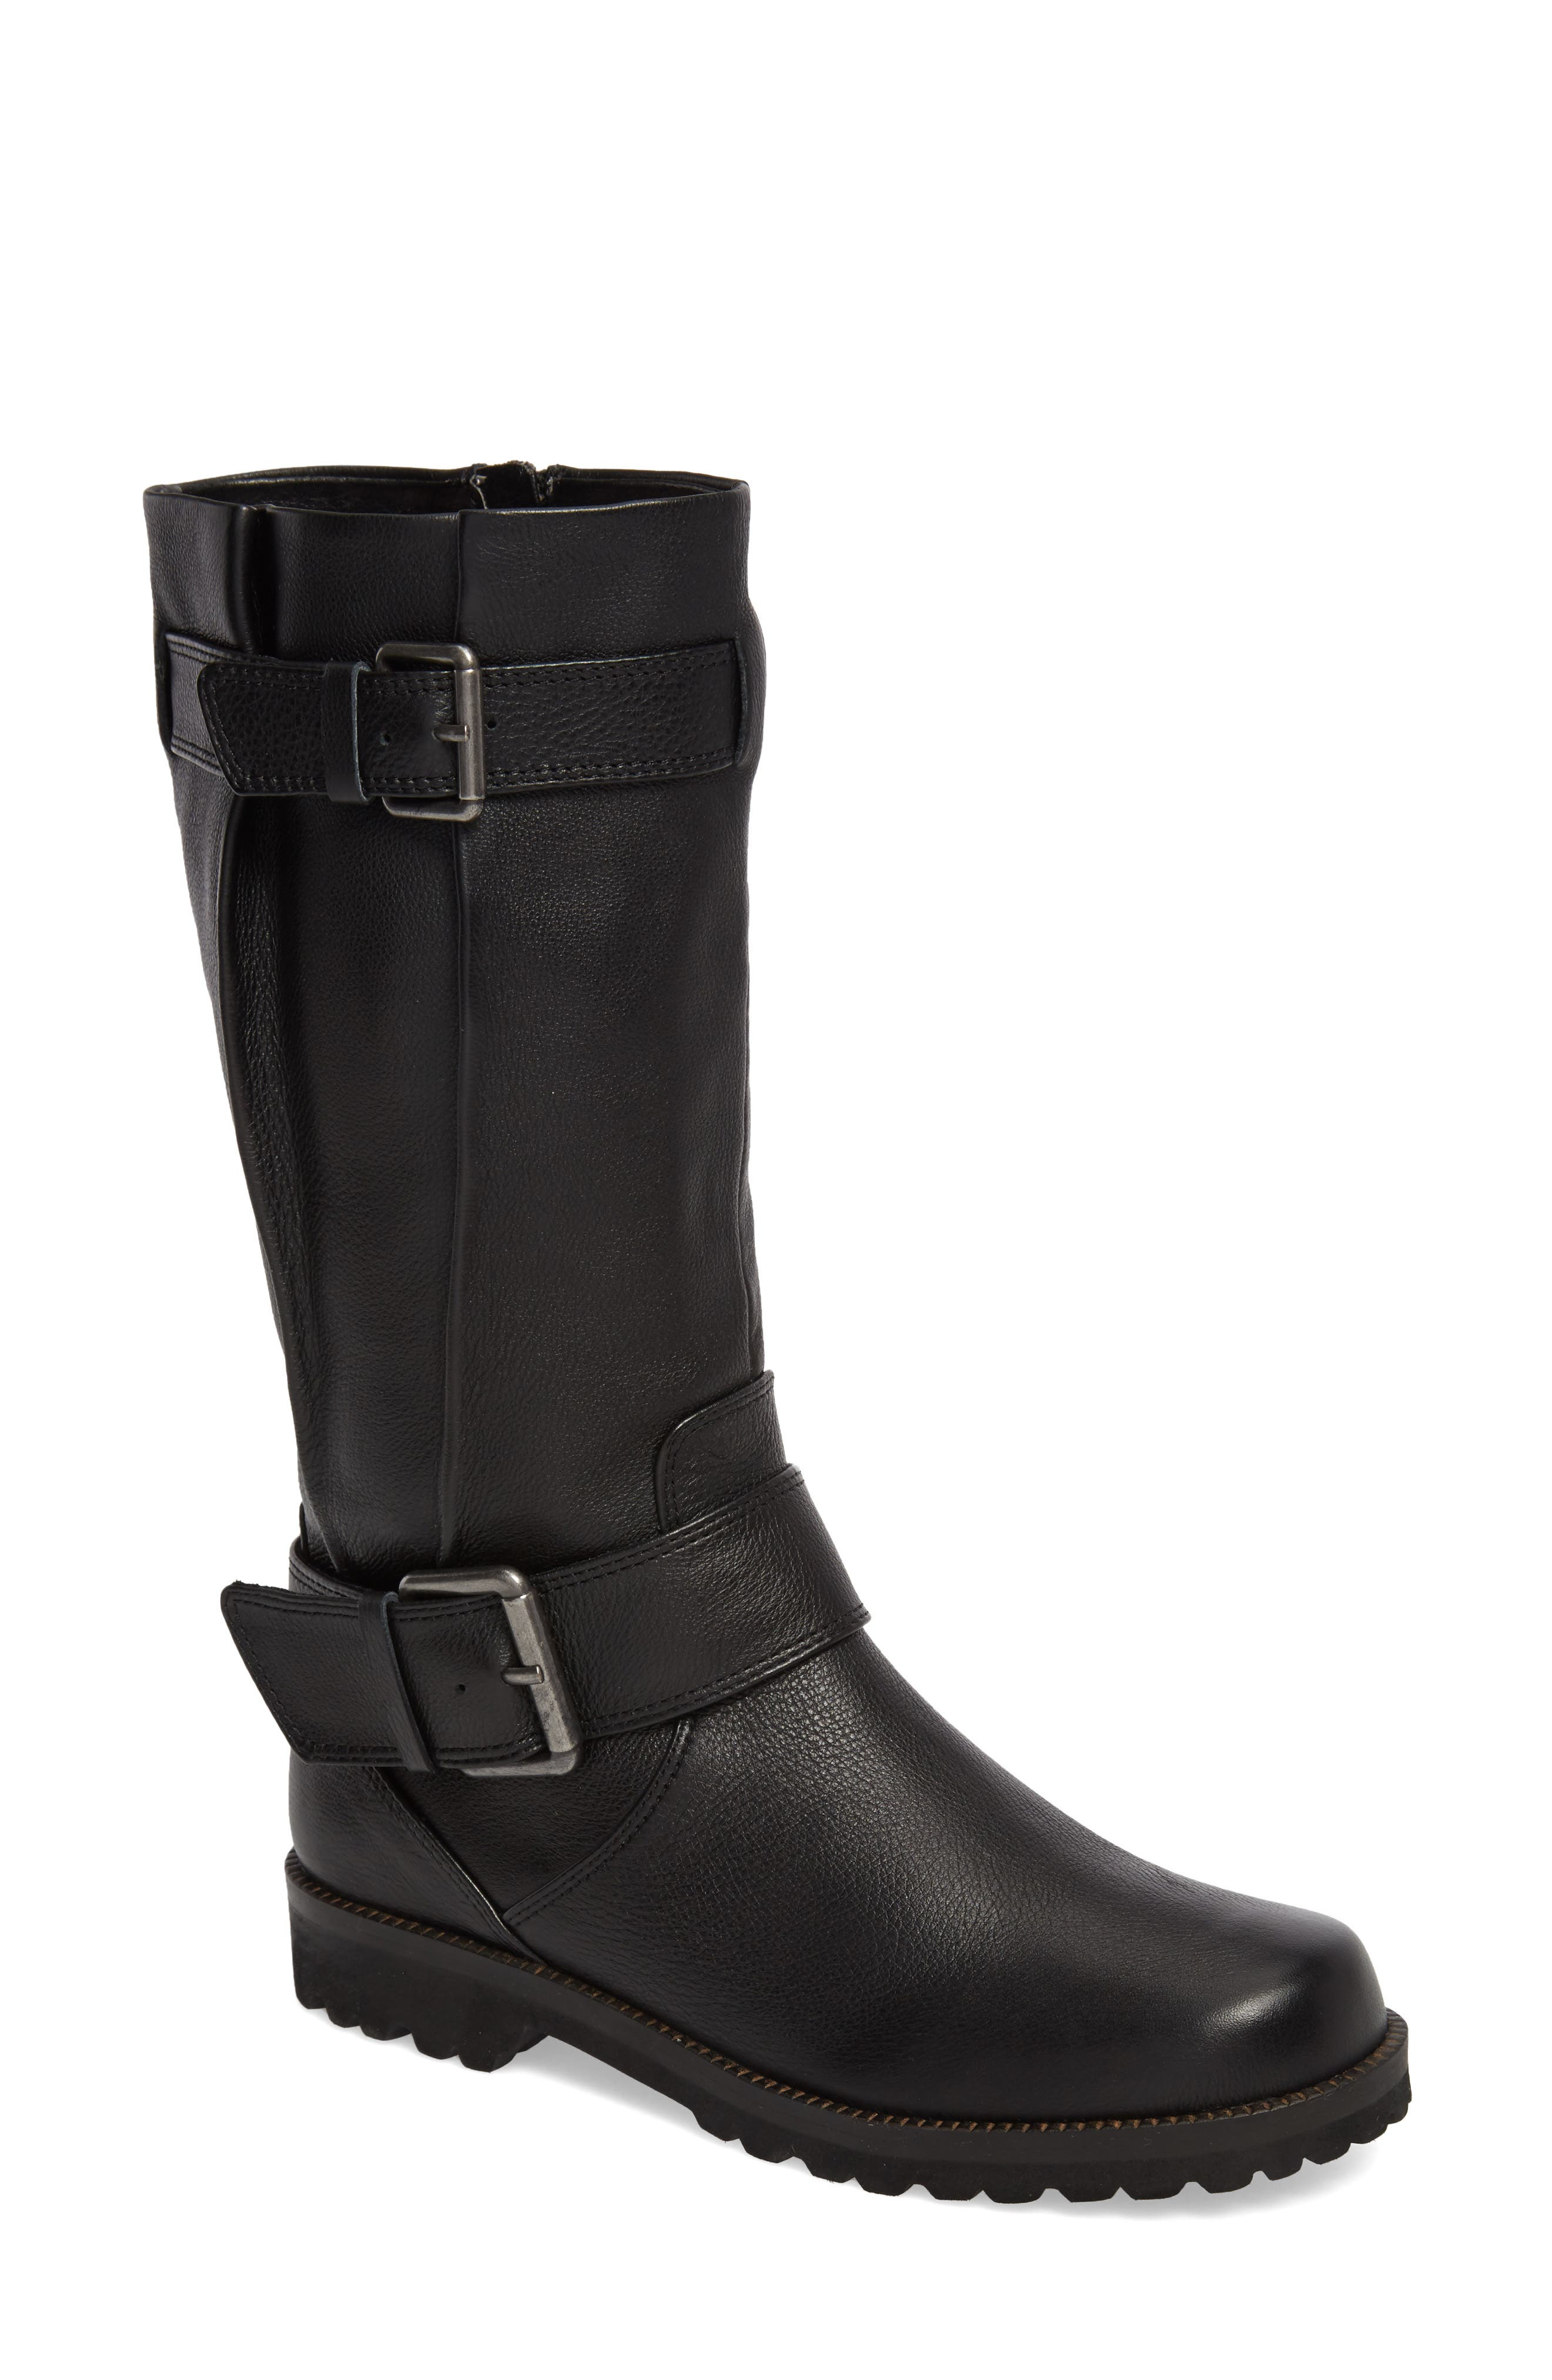 GENTLE SOULS BY KENNETH COLE 'Buckled Up' Boot, Main, color, BLACK